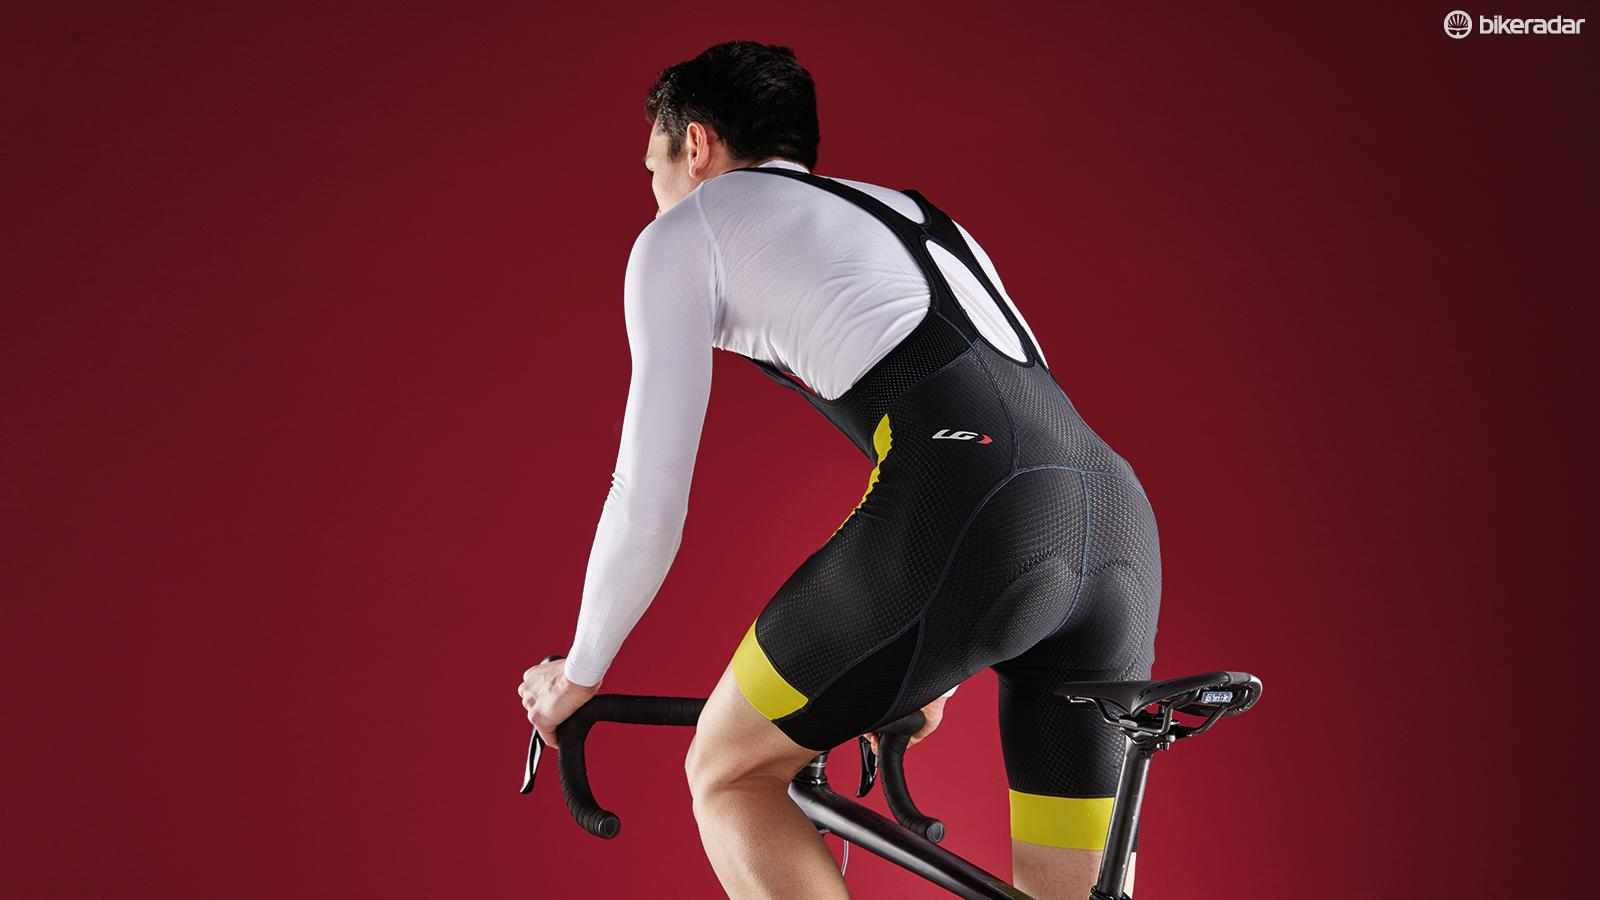 Louis Garneau CB Carbon 2 bib shorts